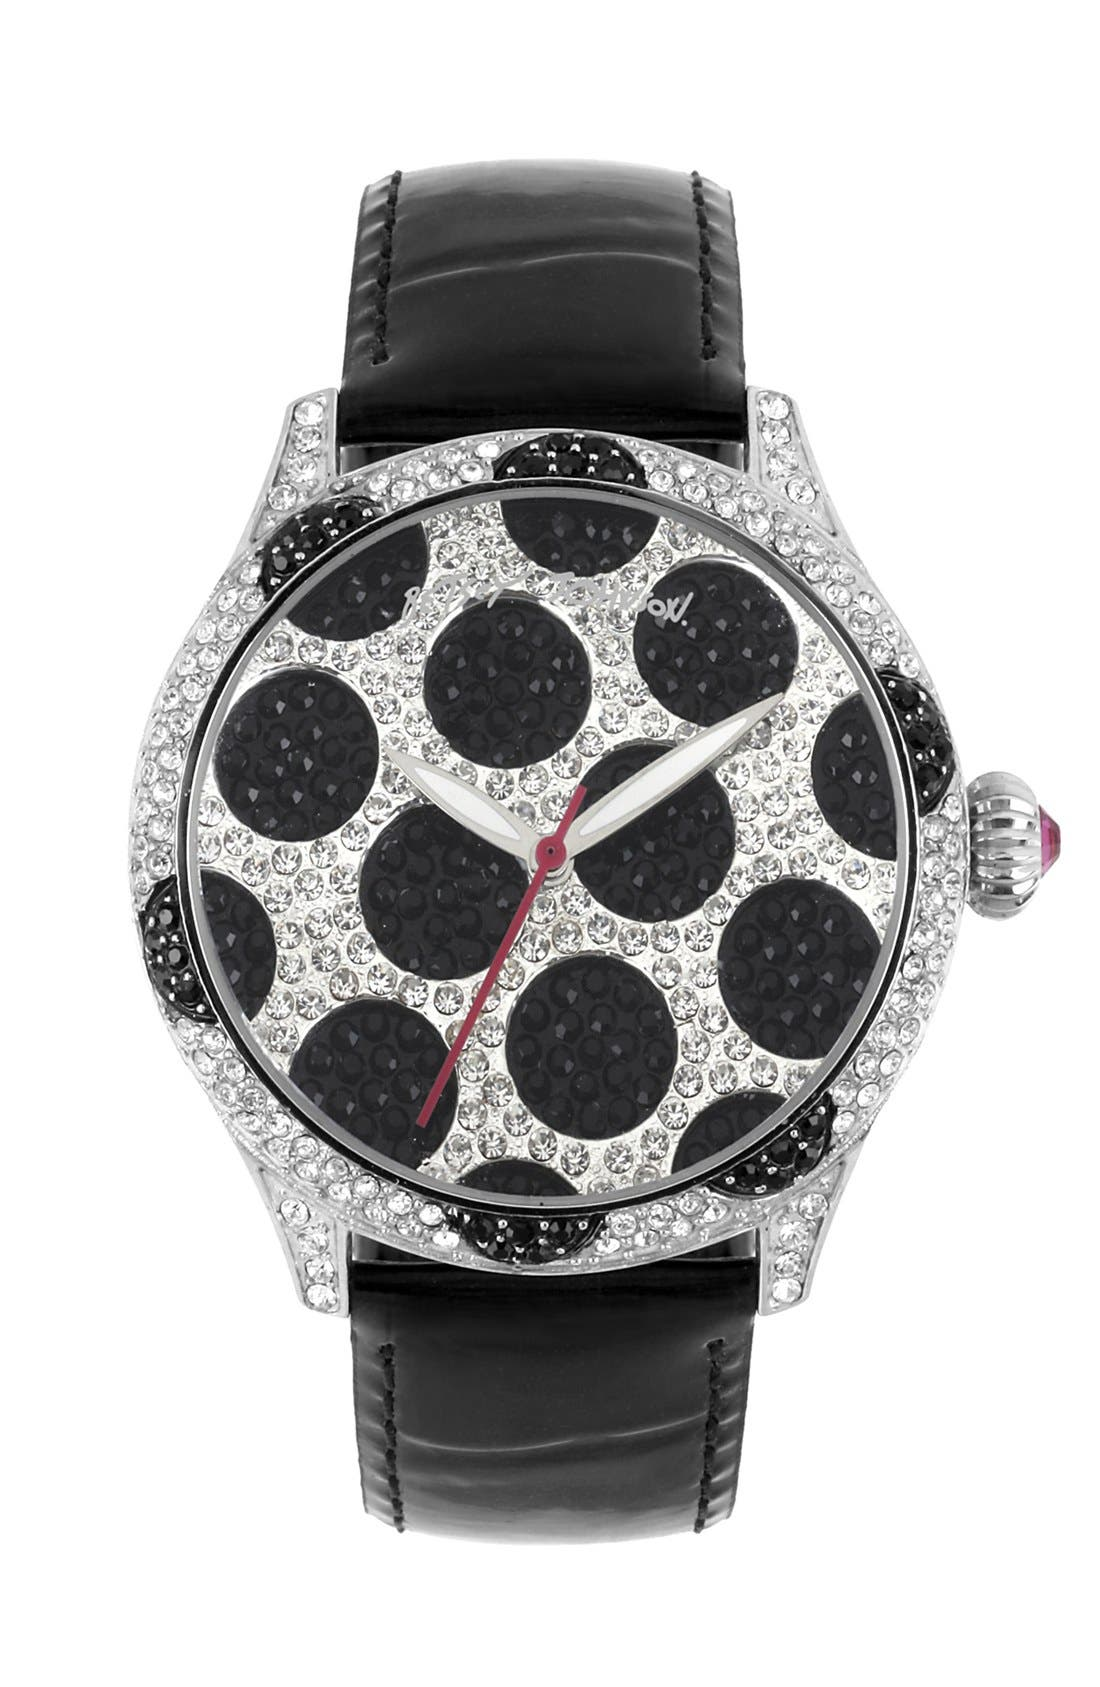 Main Image - Betsey Johnson Polka Dot Dial Watch, 41mm